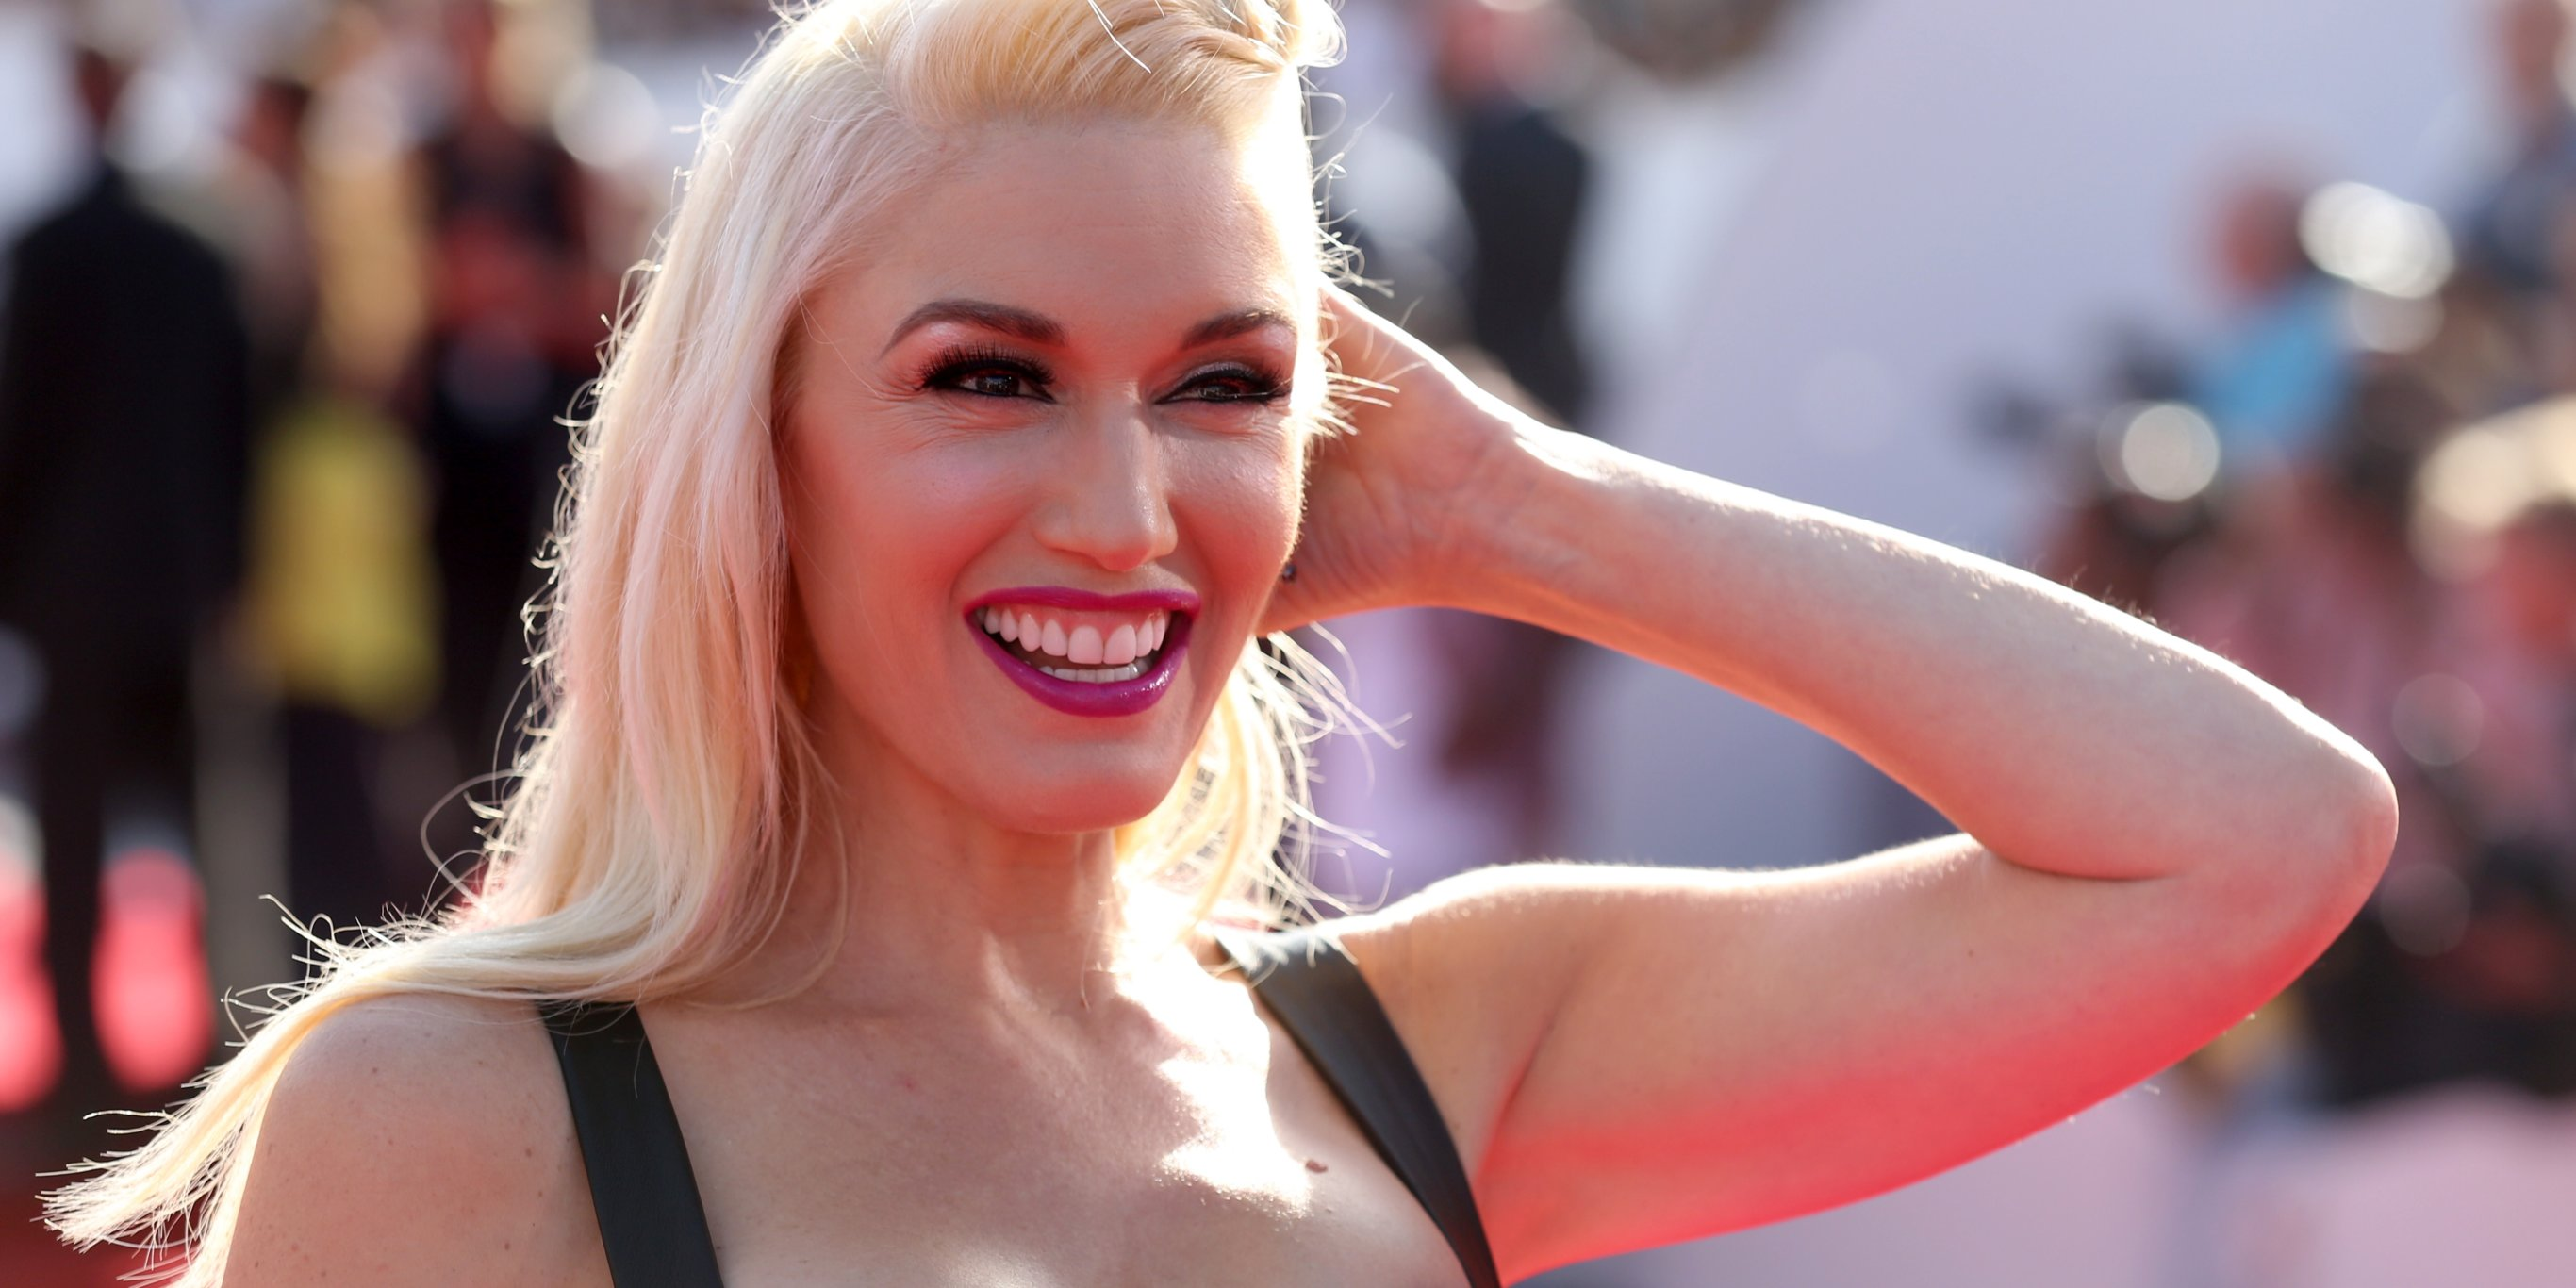 Gwen stefani diet and exercise plan